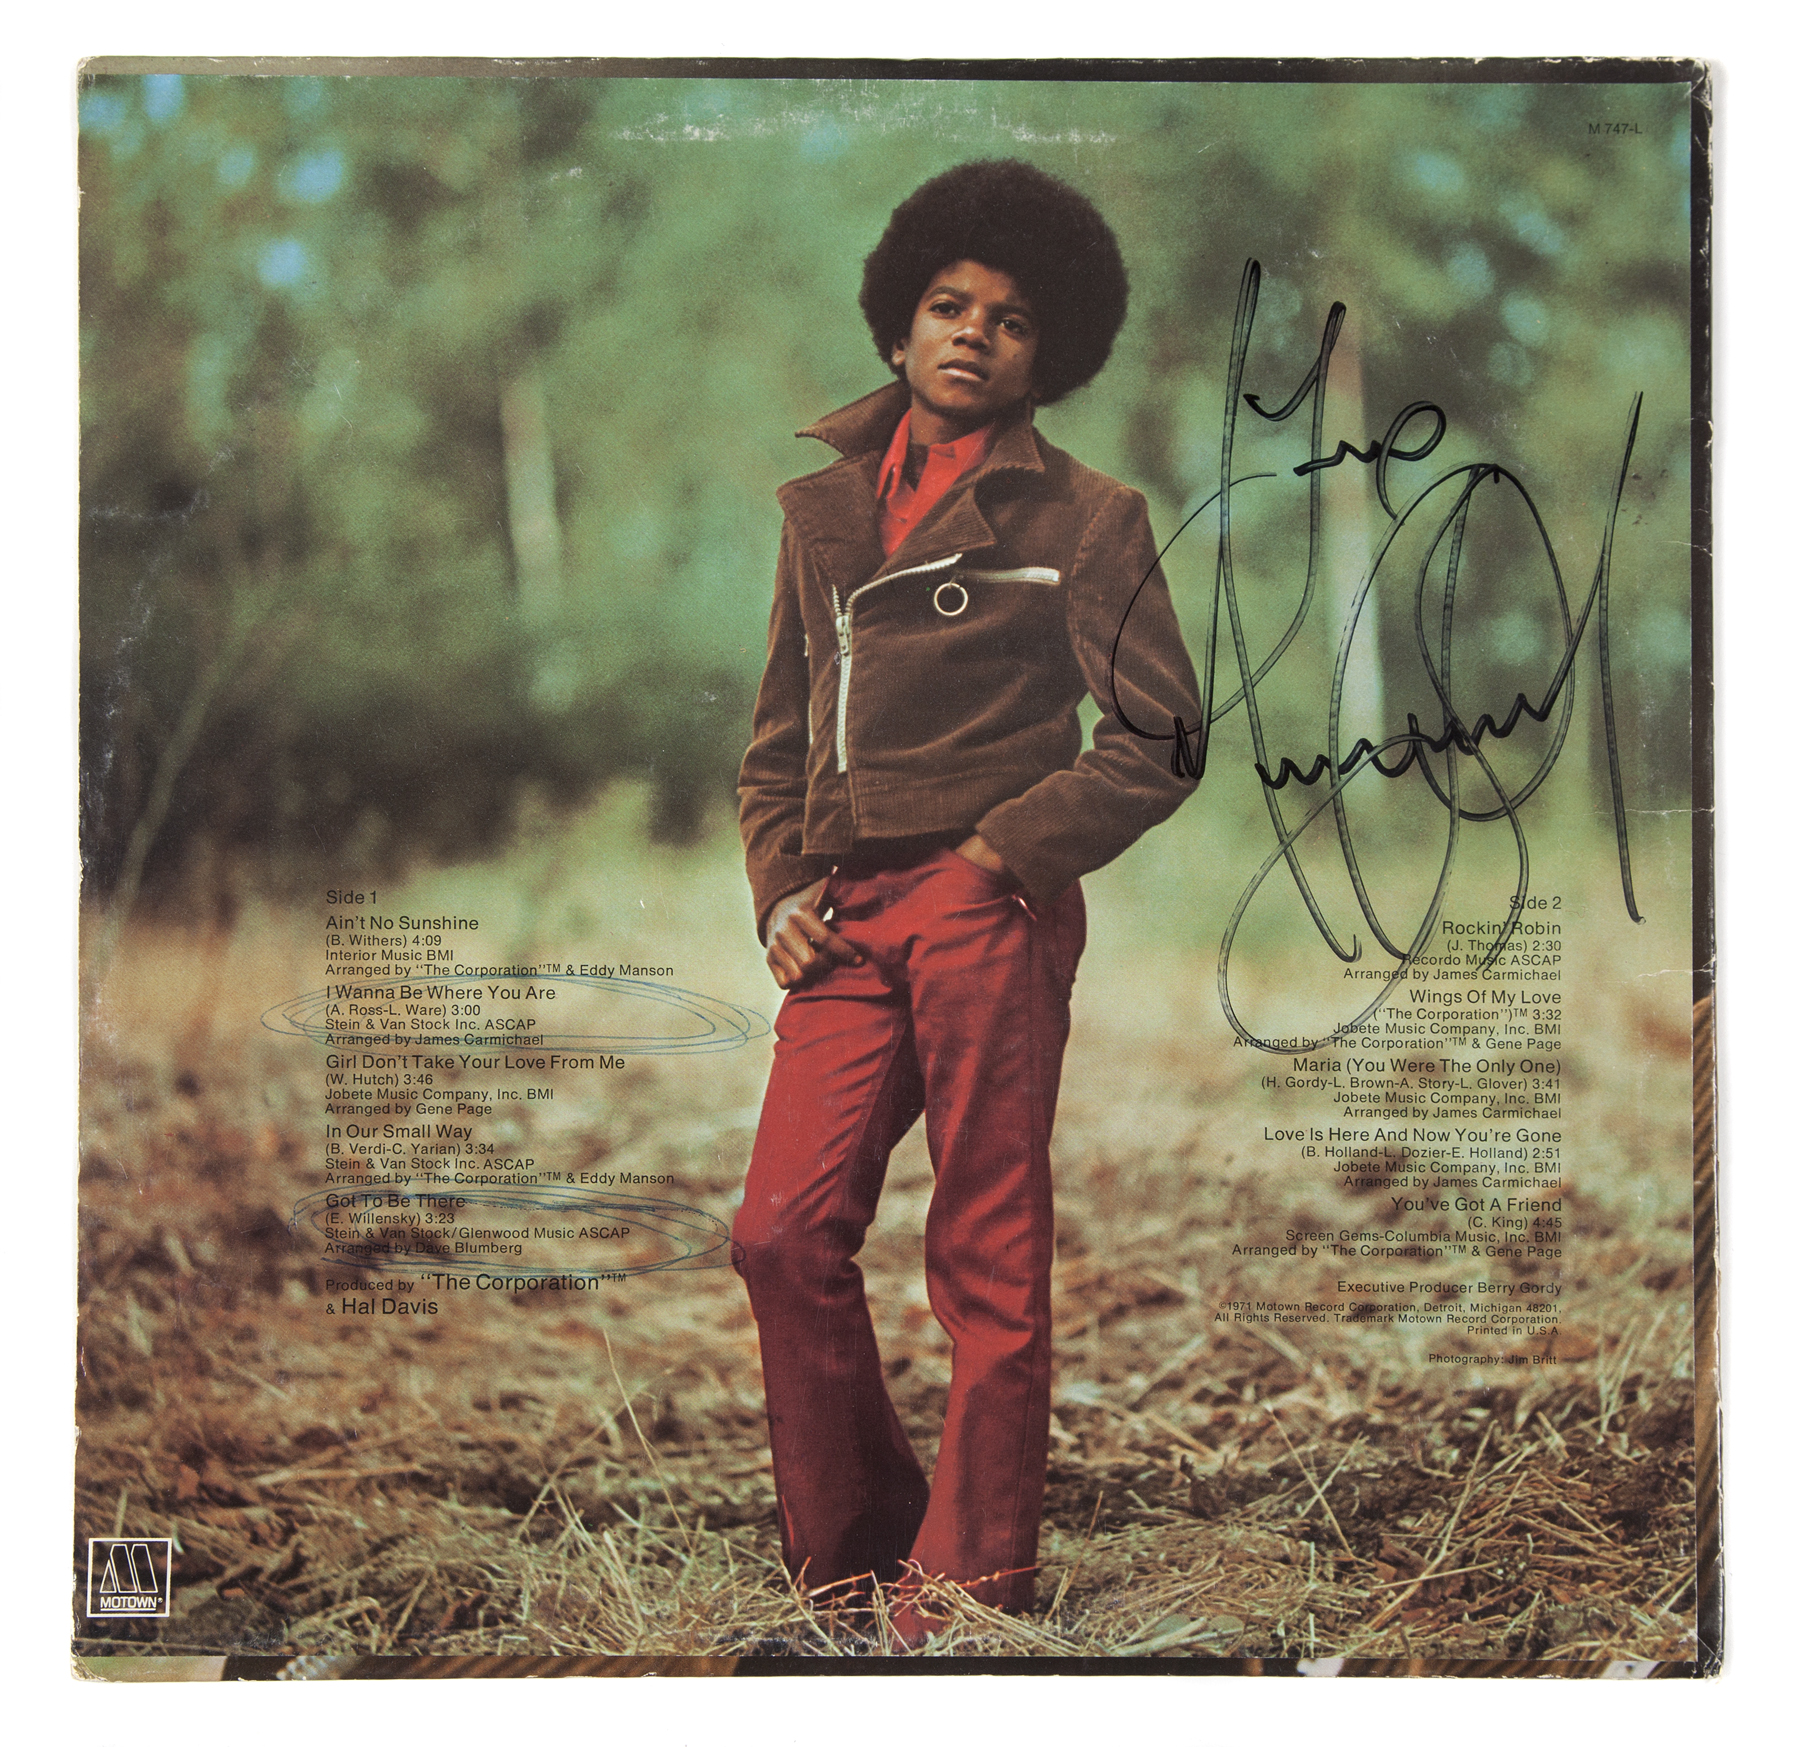 michael jackson signed album cover an original album